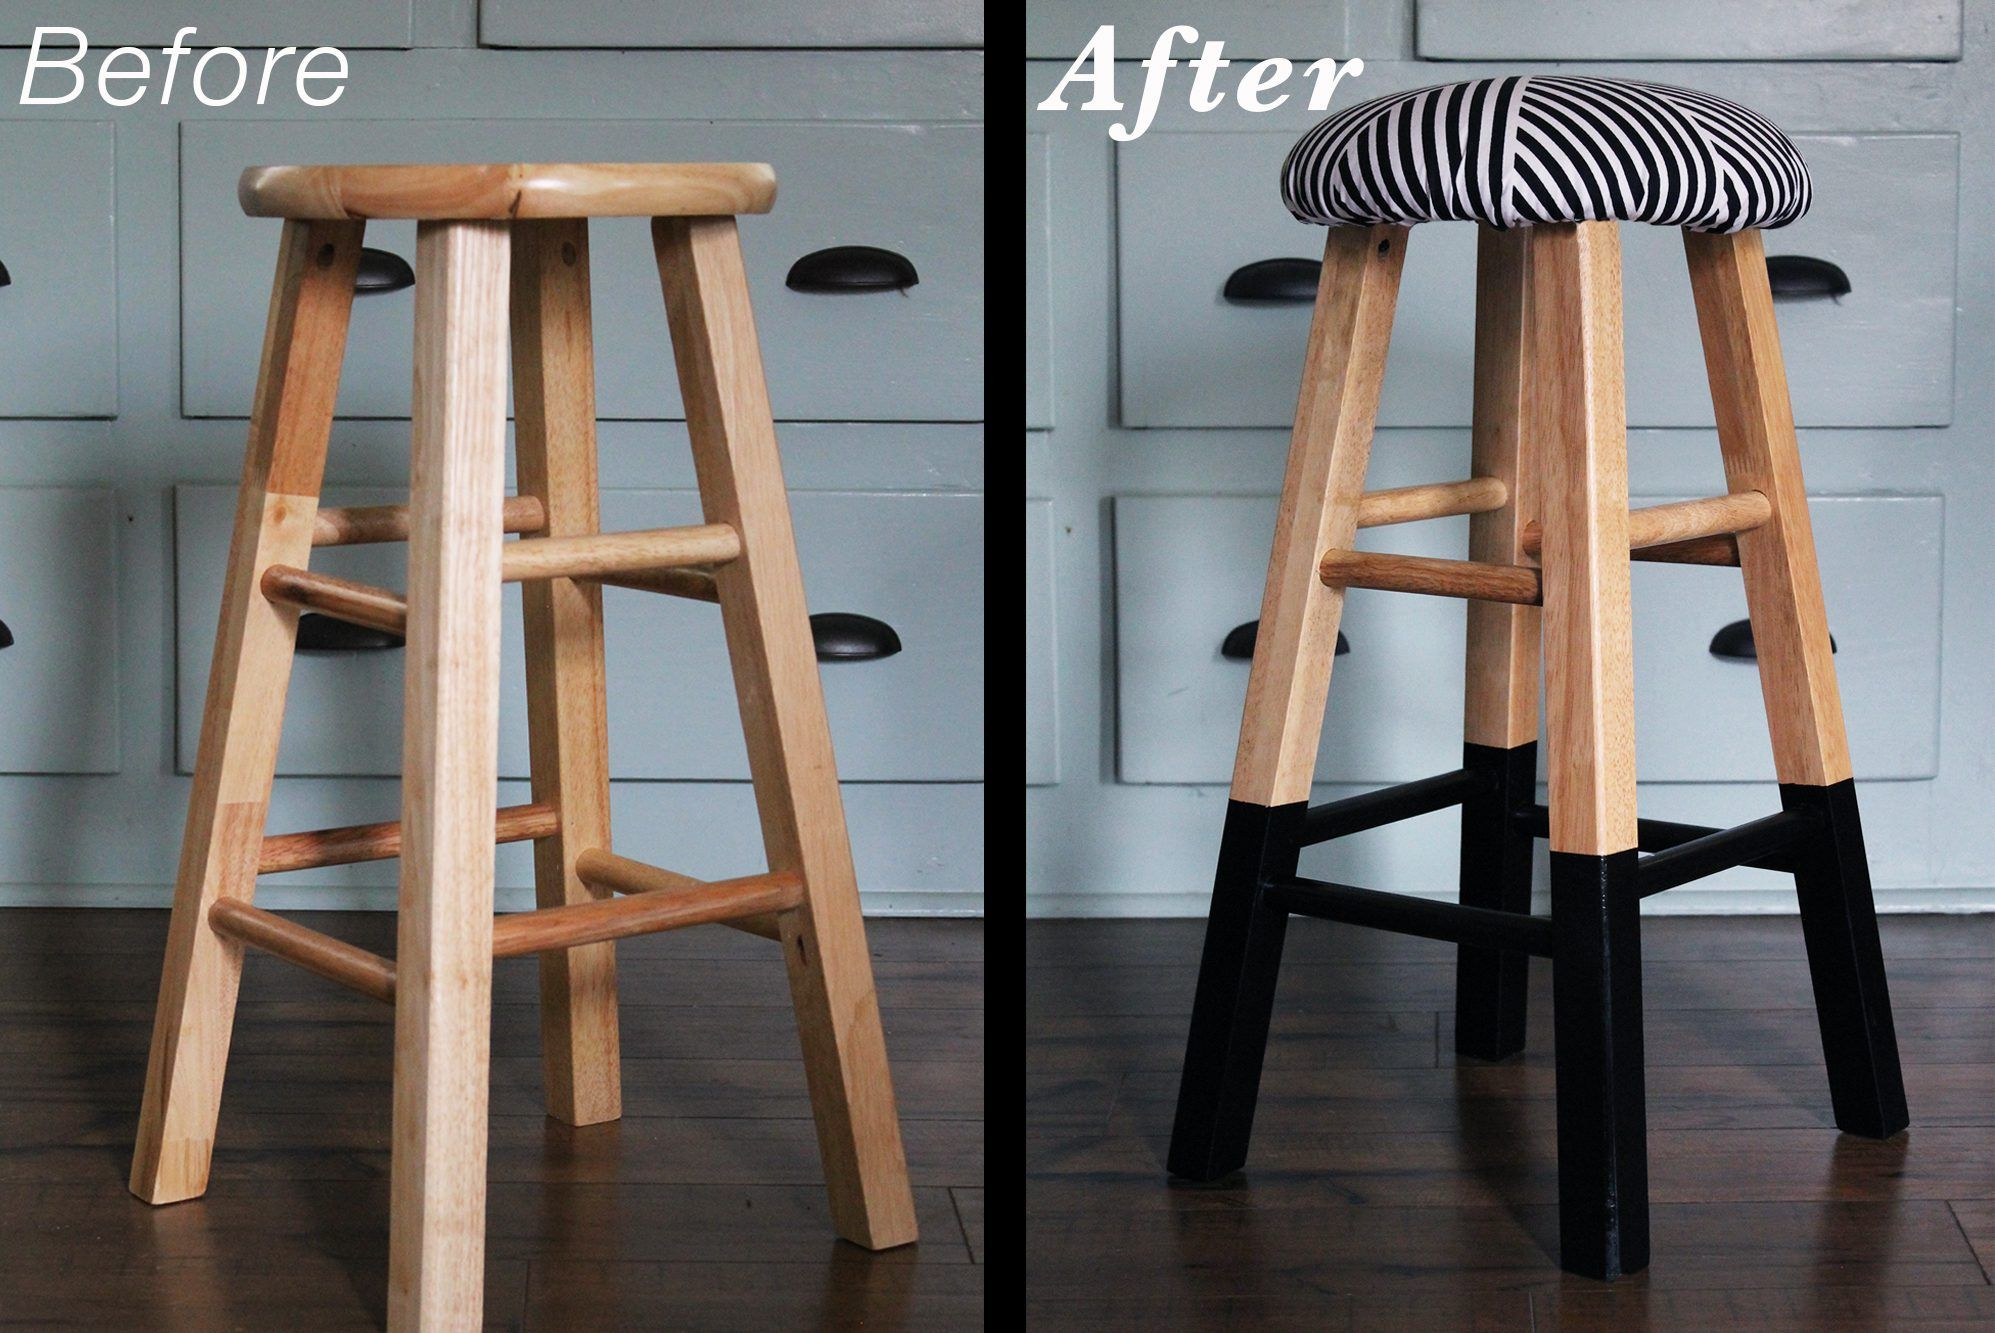 Upholster A Bar Stool With Foam And Fabric To Add A Custom Design And A Comfy Seat Add Paint To The Le Upholstered Bar Stools Diy Bar Stools Wooden Bar Stools